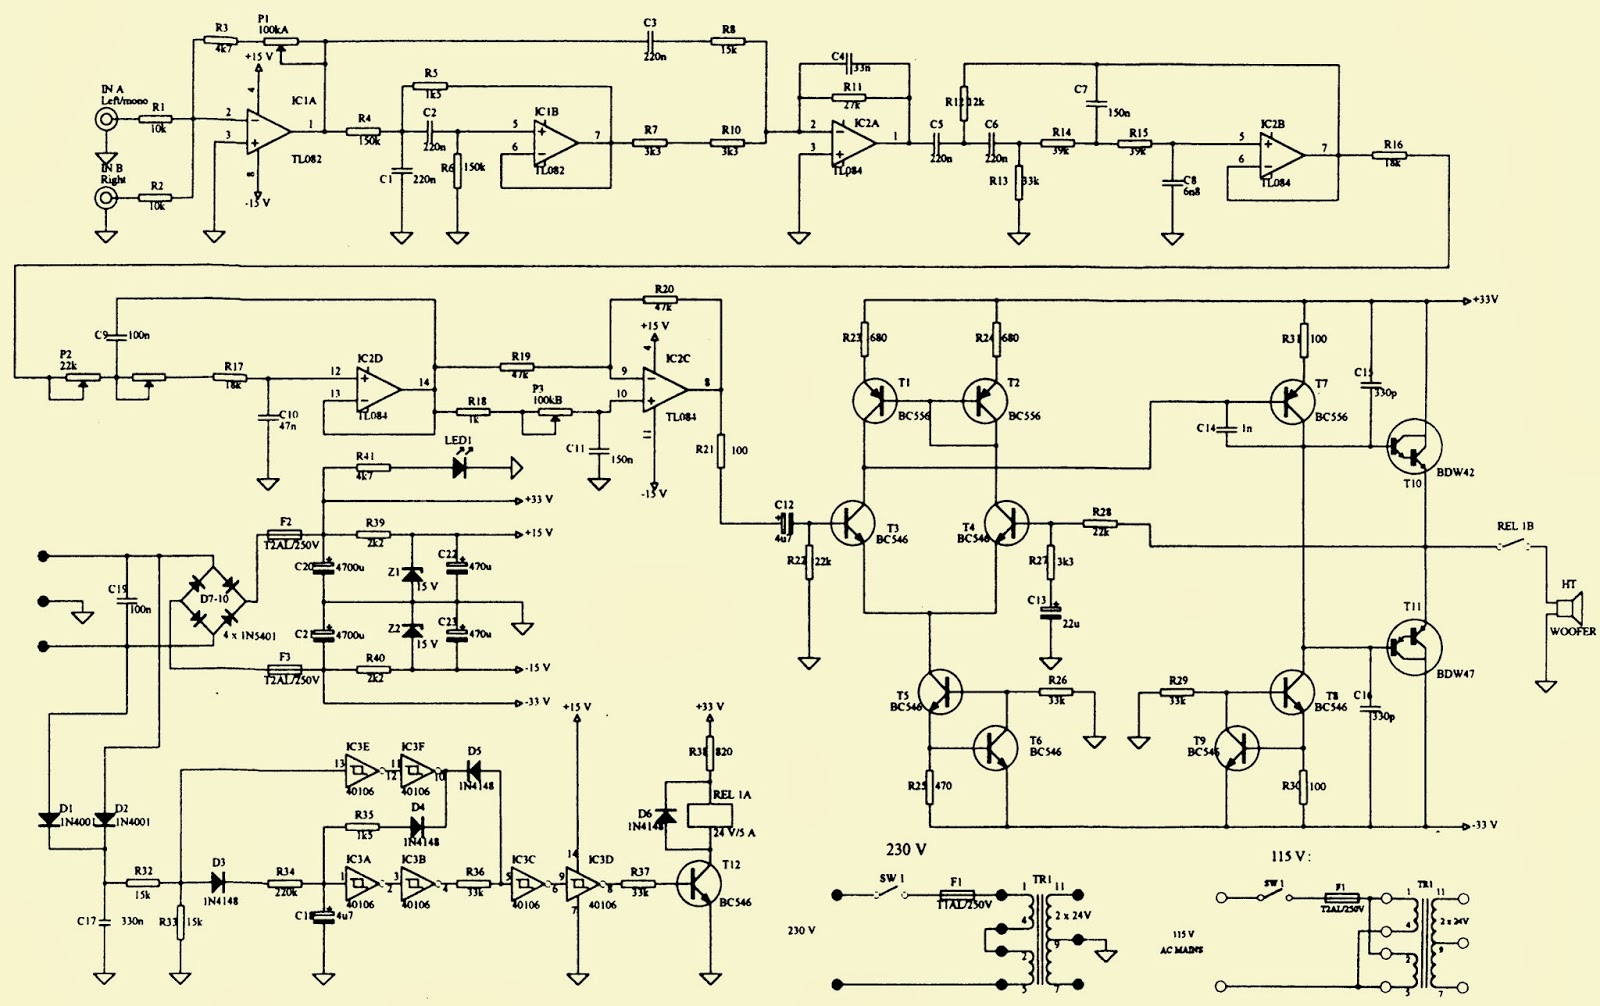 jamo sub 250 circuit diagram image